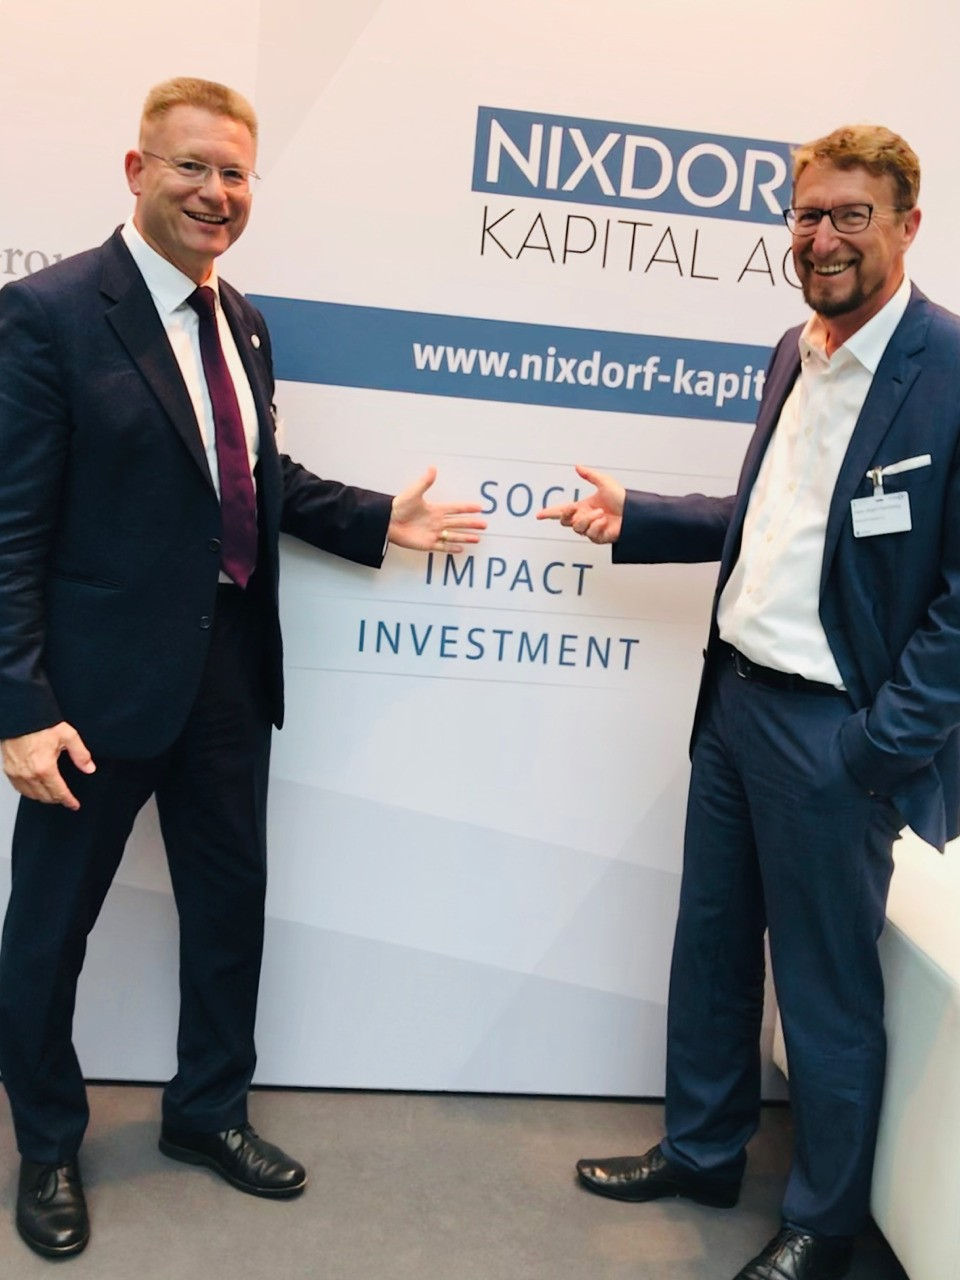 NIXDORF Kapital AG - Social Impact Investment  cover image